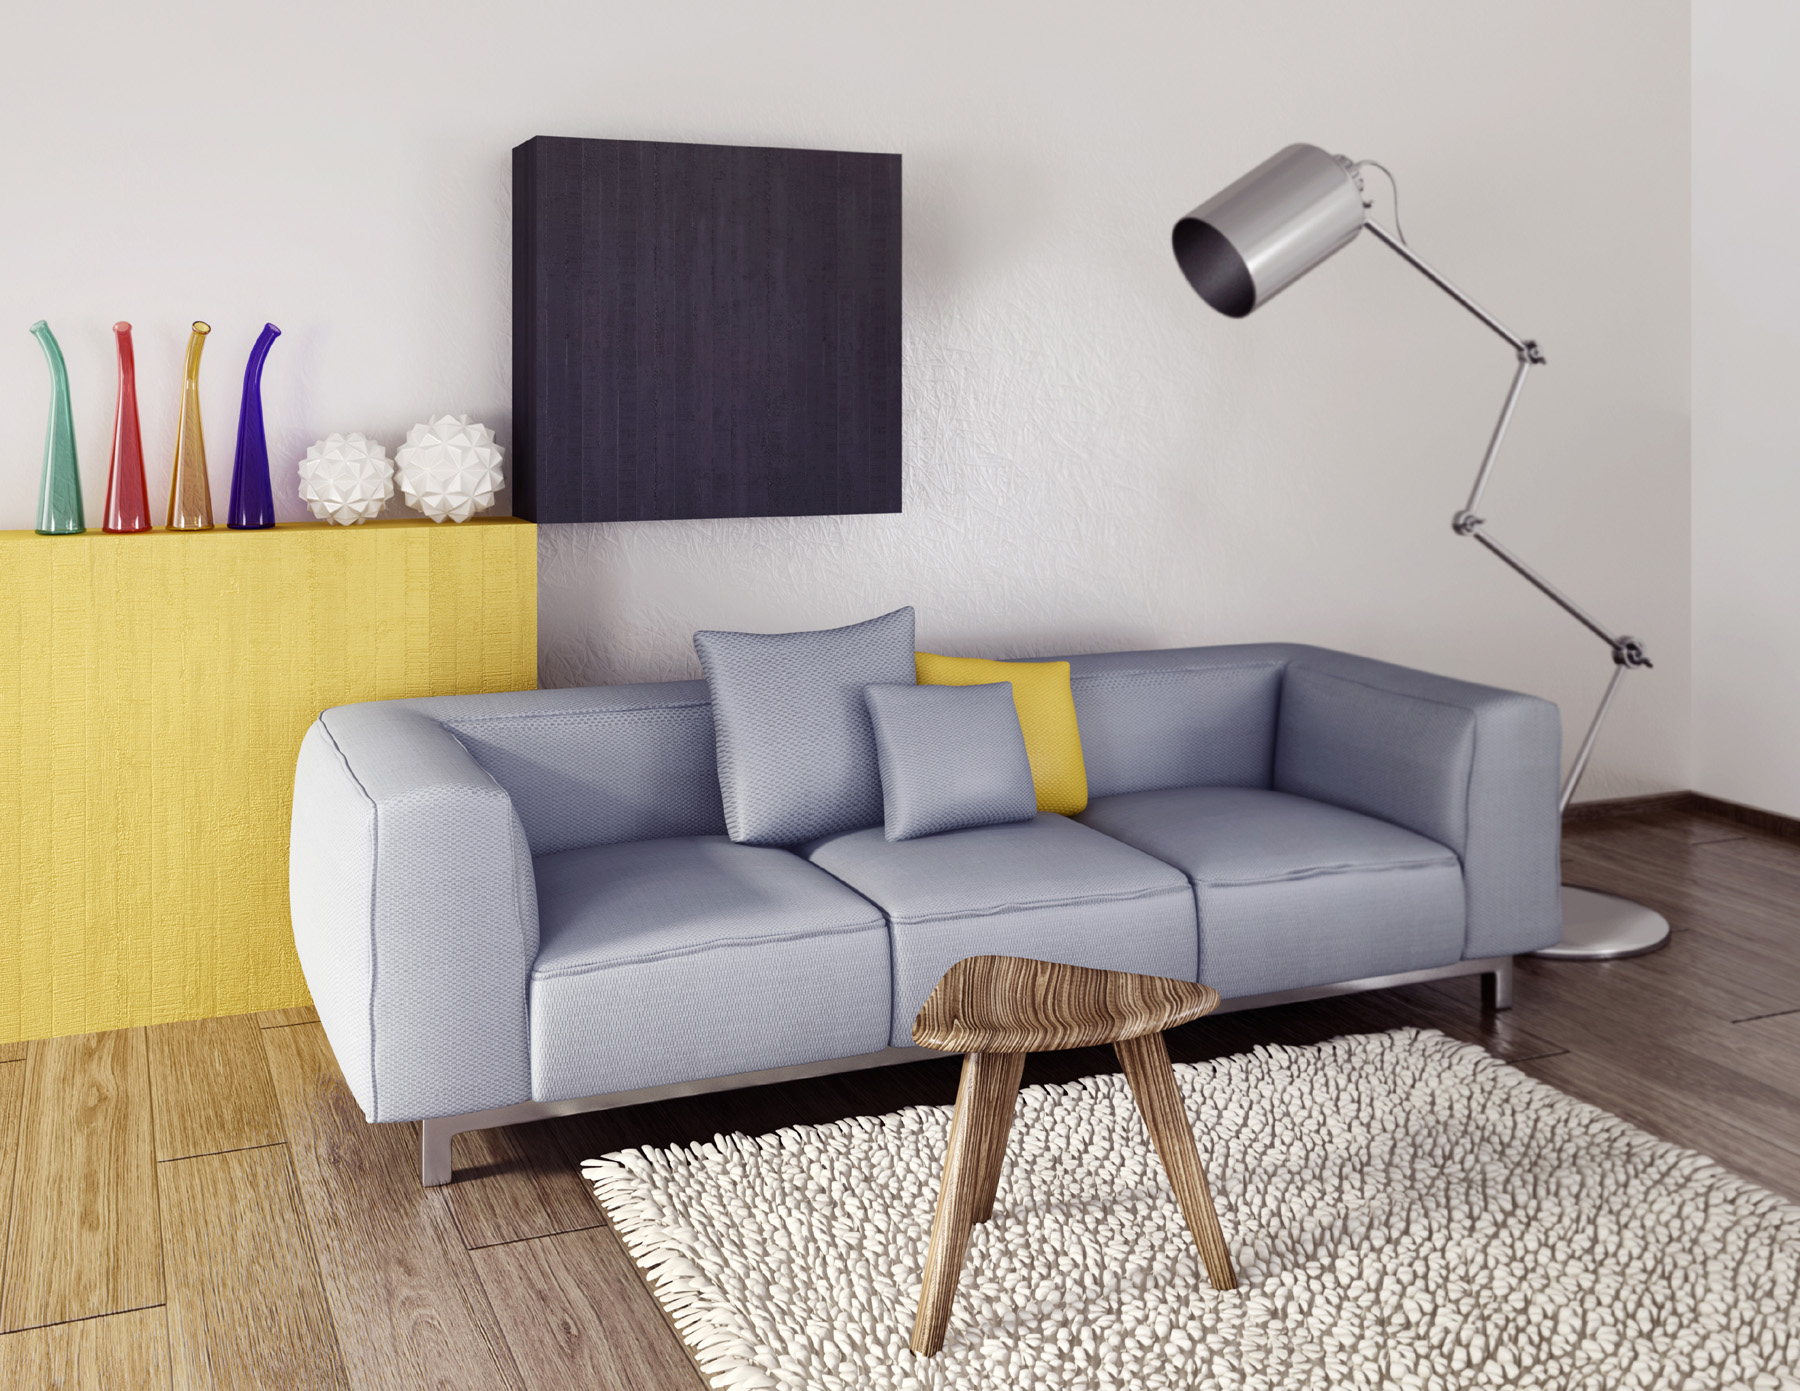 Room sofas stools and floor lamps 51792